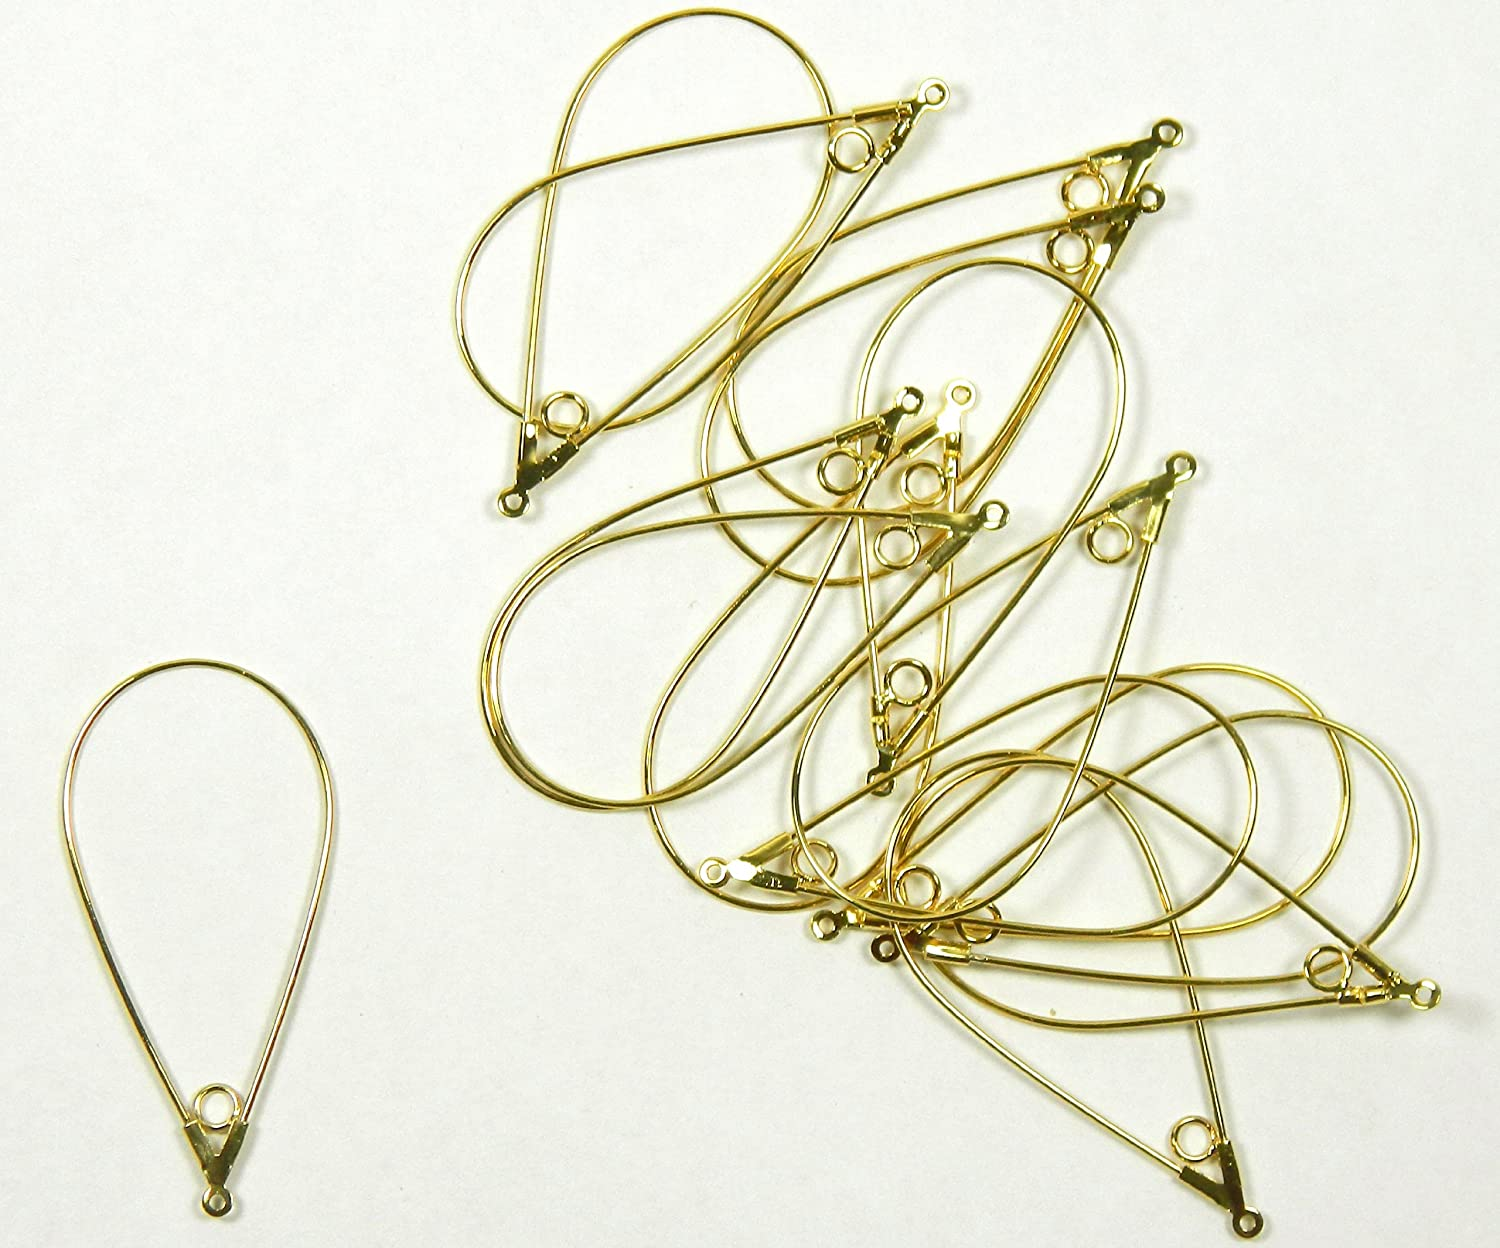 48 Gold-plated Brass, 40x22mm Smooth Teardrop with Loop Add a Bead Hoops, for Earrings 21 Gauge Wire. 24 Pair Hong kong earwires ZA08059